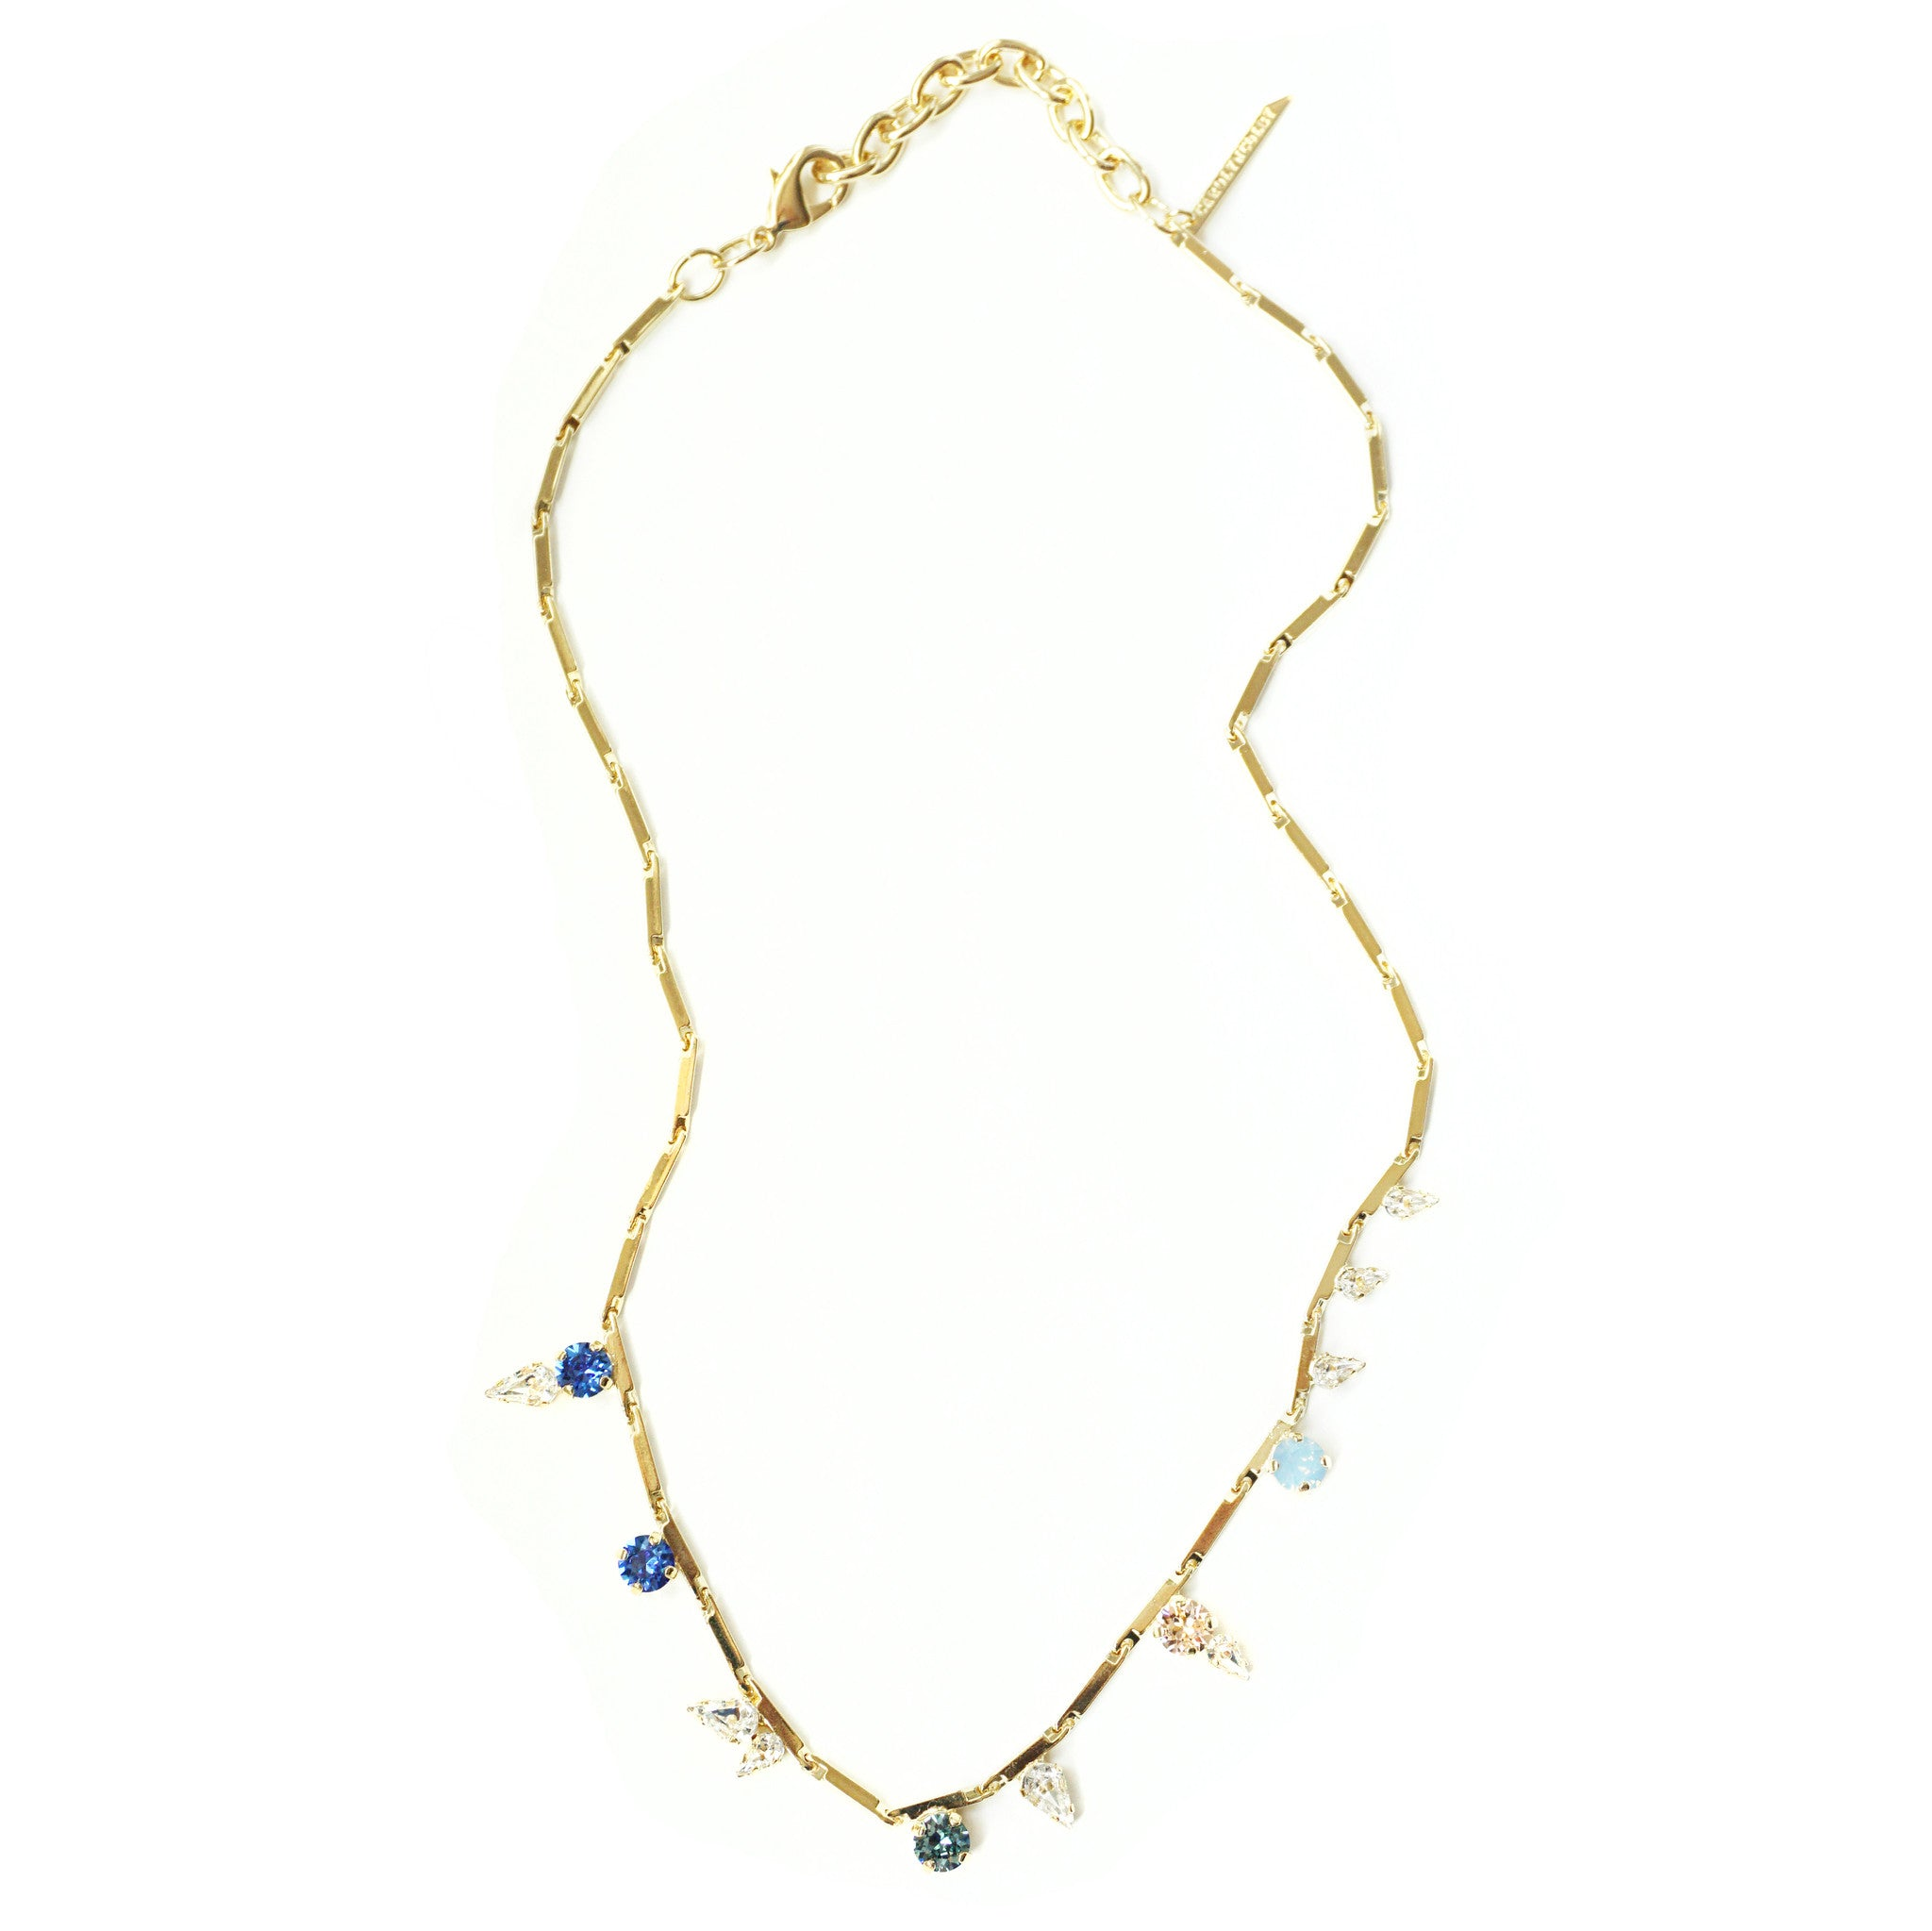 CAROLYN COLBY - GOLD GEM NECKLACE